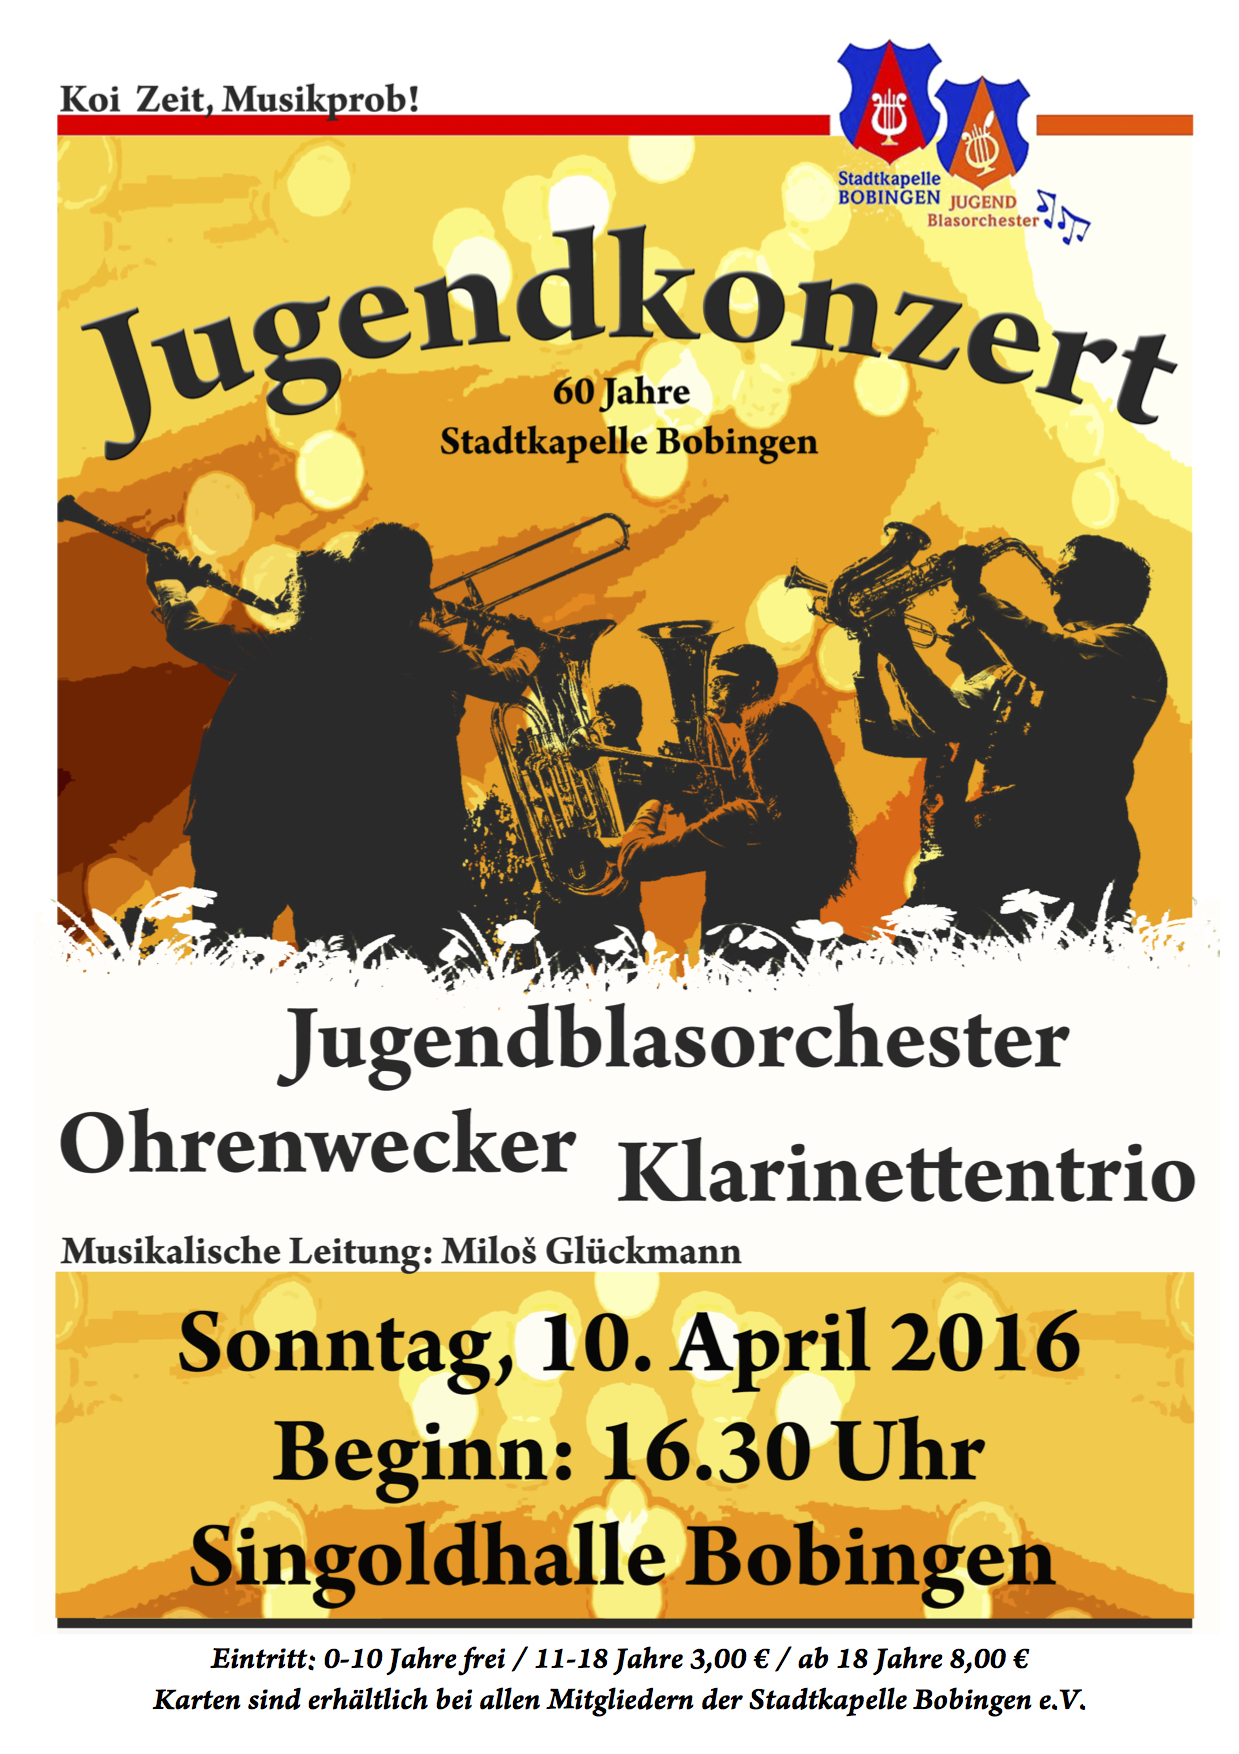 Jugendkonzert am 10. April 2016